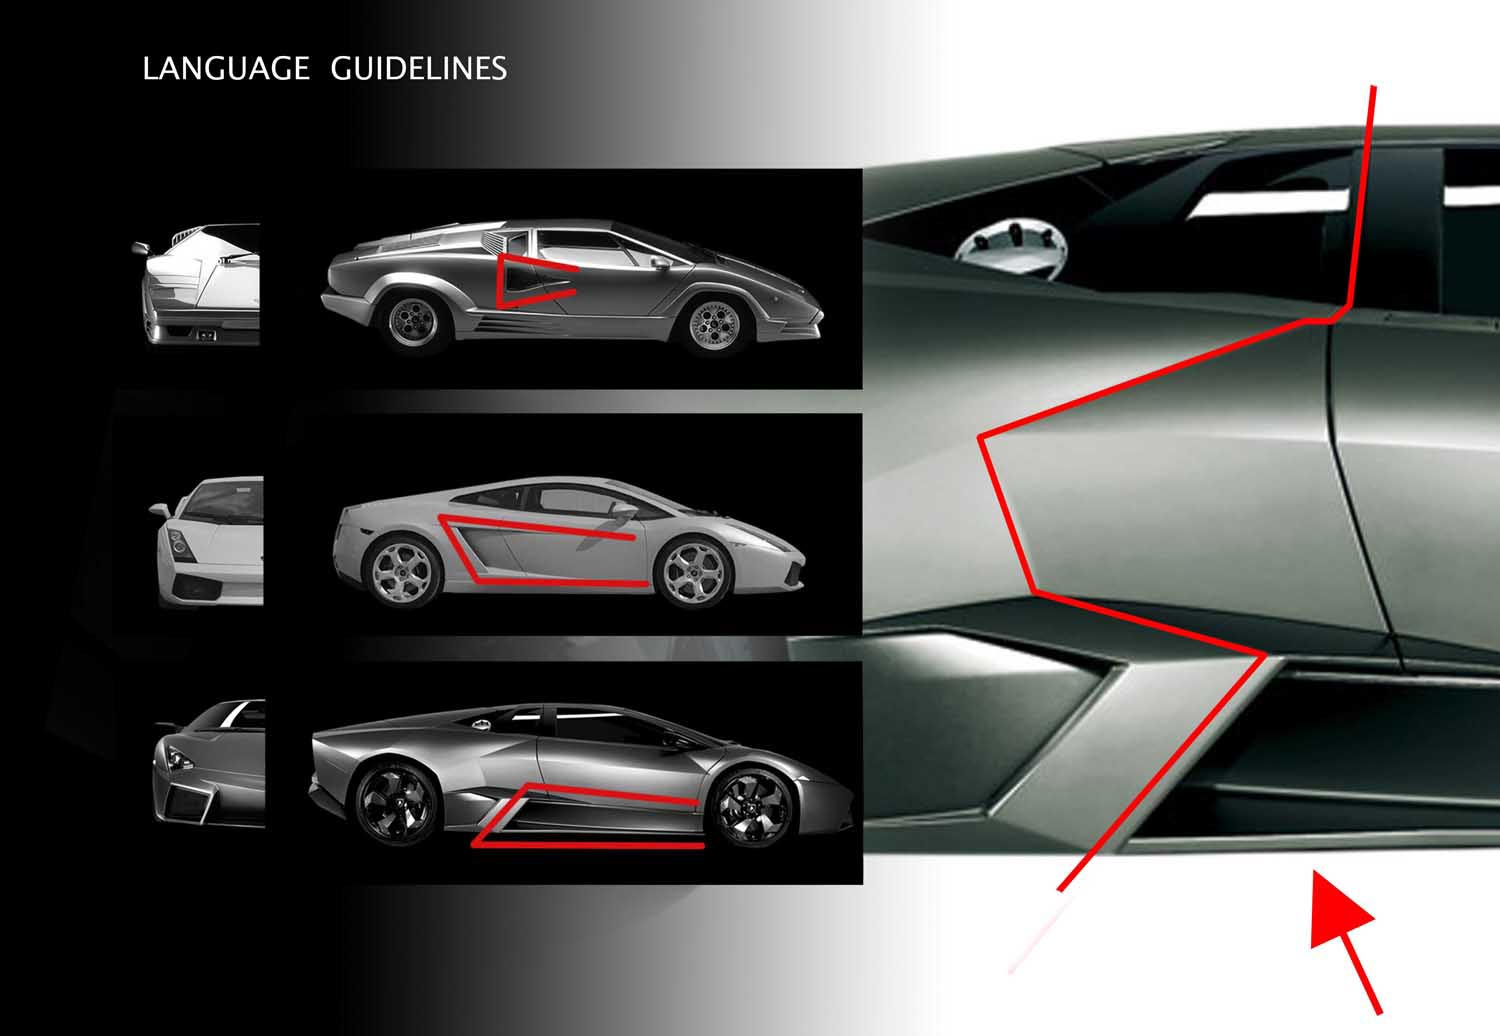 lamborghini reventon designer with Lamborghini Concept Yacht Dream Machine For All Lambo Fans on Lamborghini Concept Yacht Dream Machine For All Lambo Fans as well Paper Car Template further Inferno Is 1400 Hp New Mexican Supercar besides Lamborghini Reventon Roadster moreover Lamborghini Ve o 113678630.